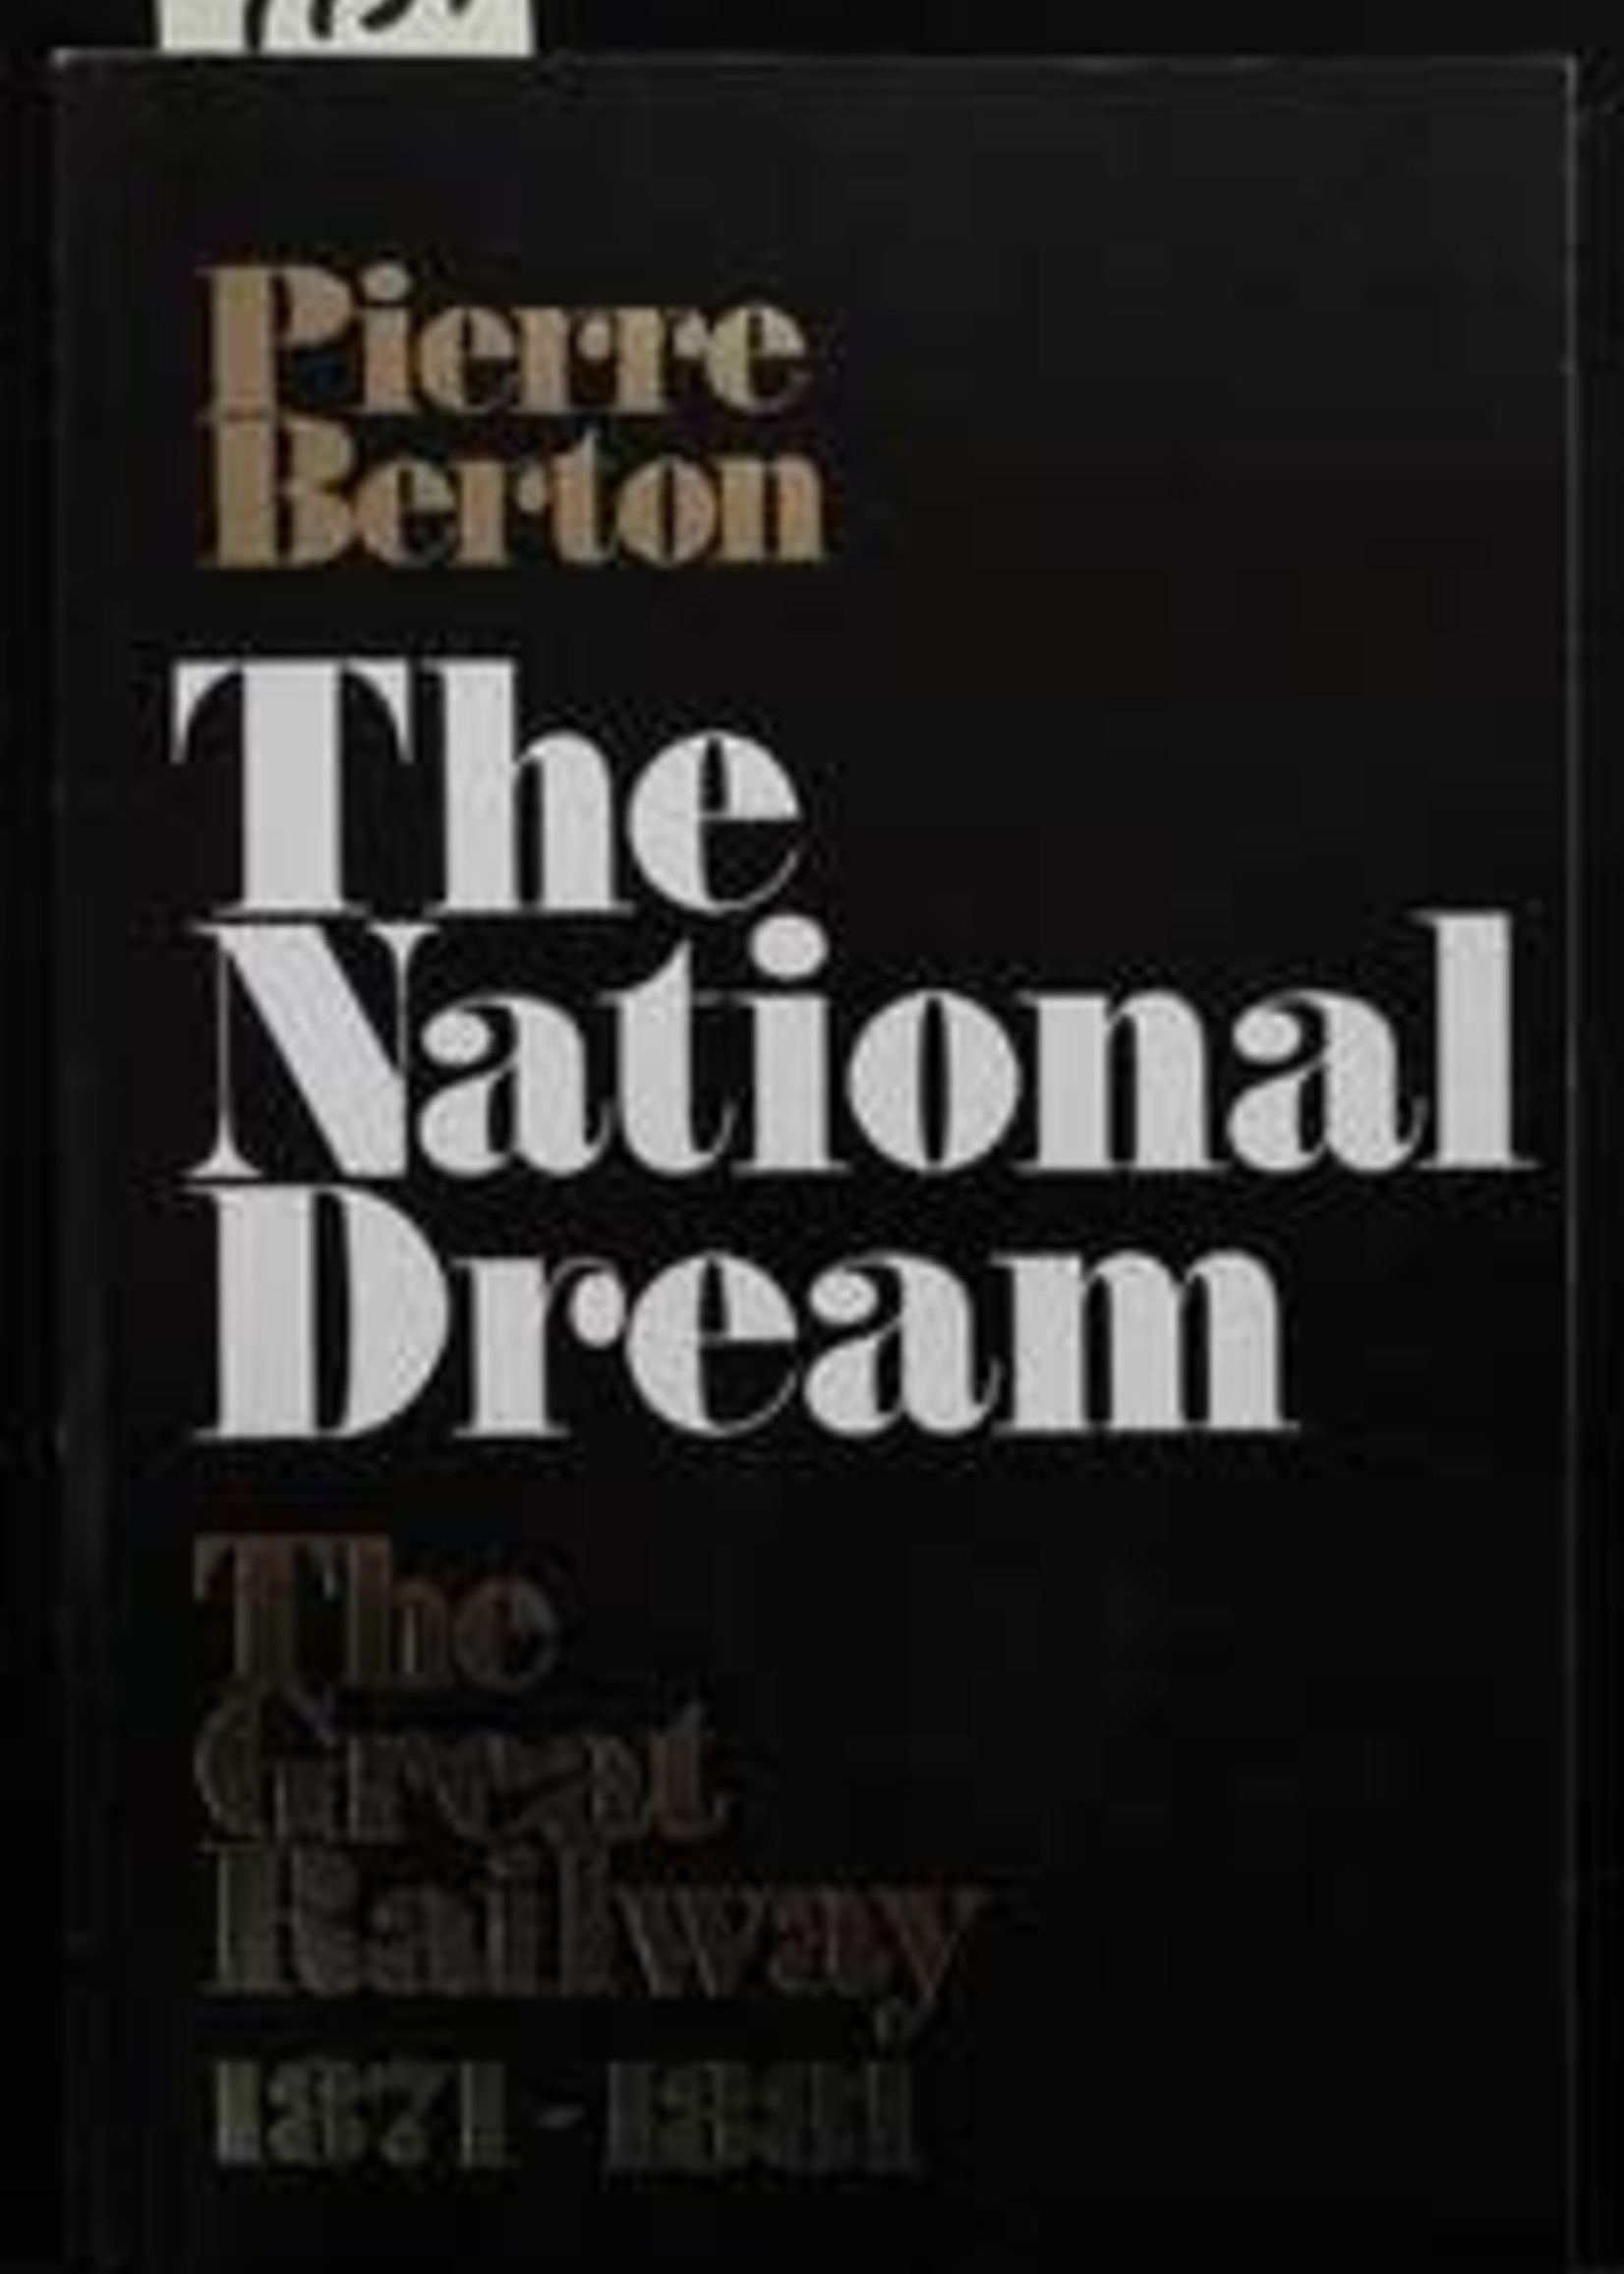 USED - The National Dream: The Great Railway 1871-1881